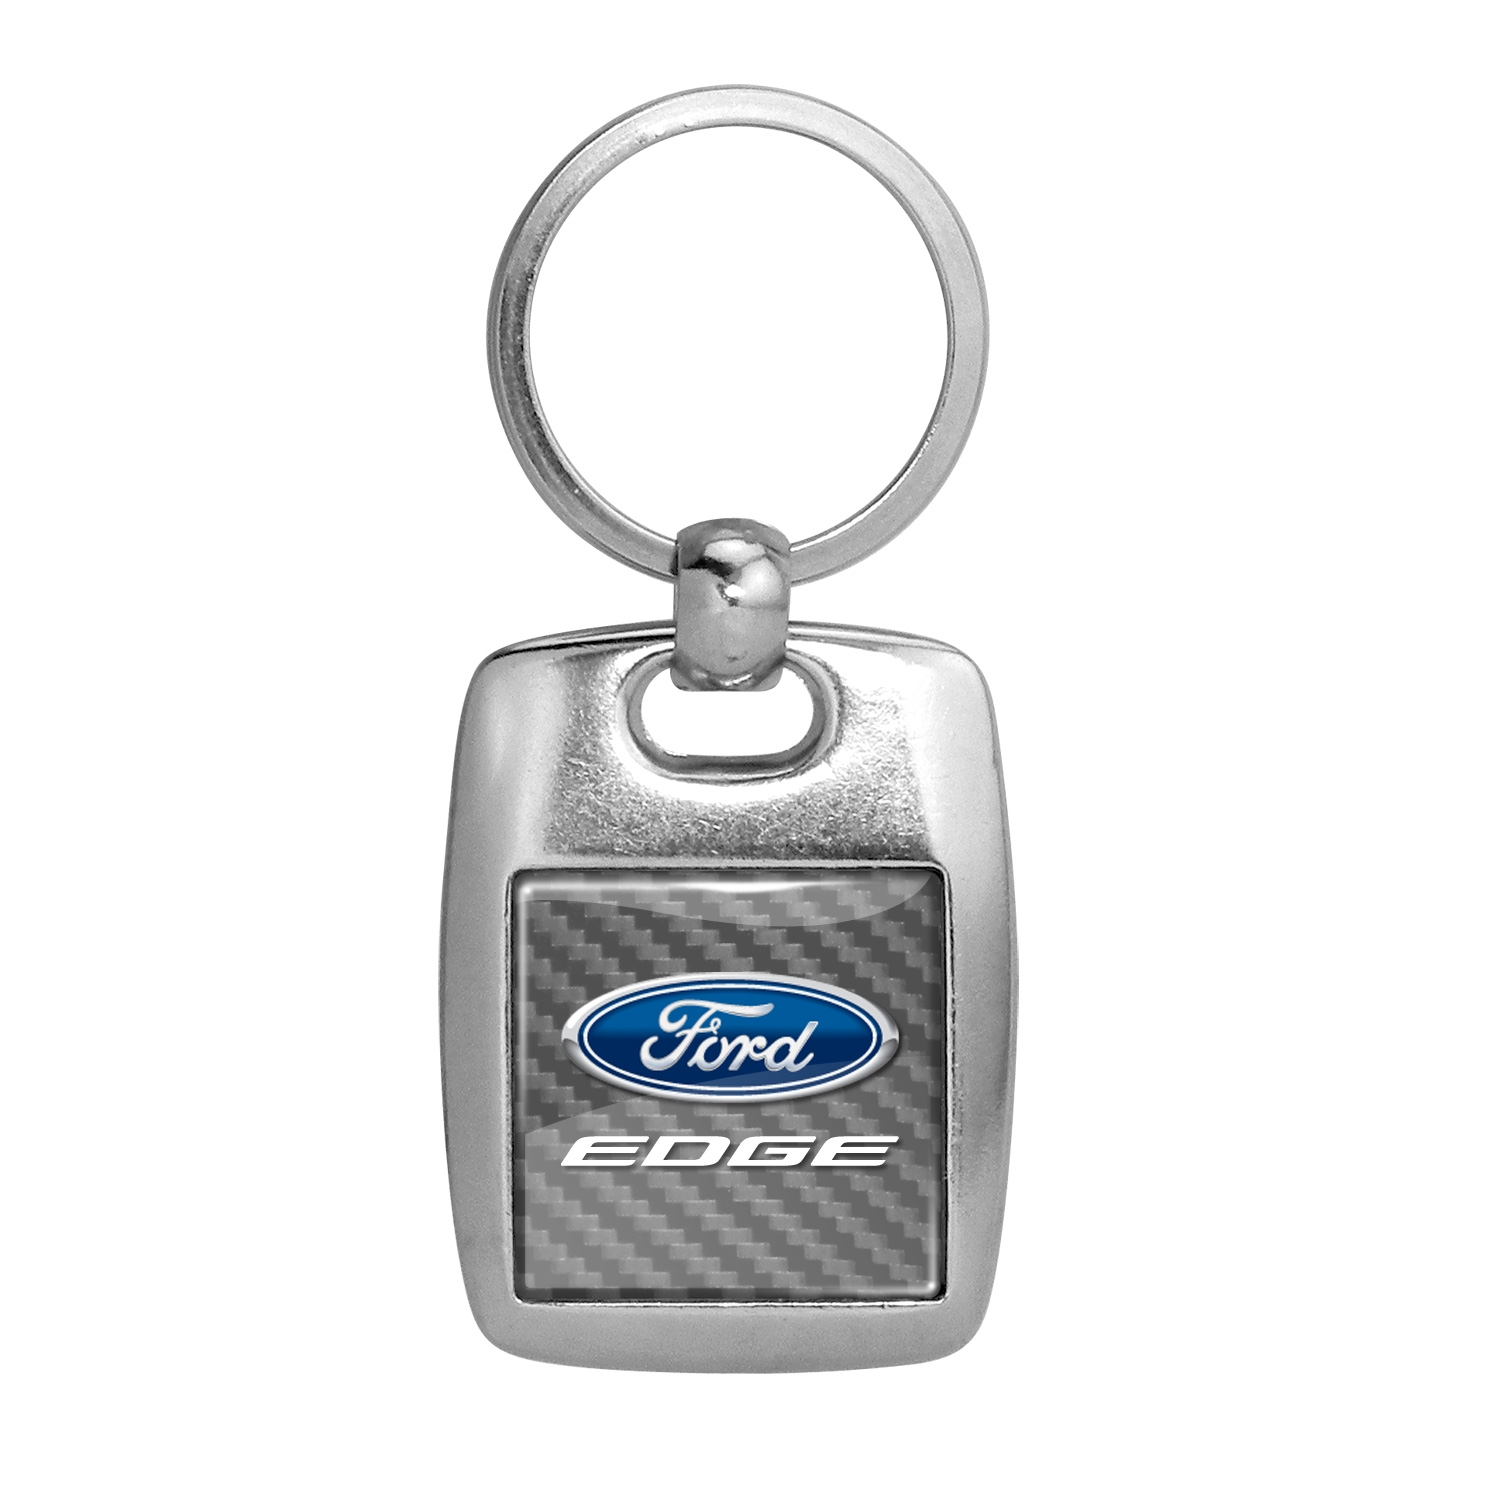 Ford Edge Silver Carbon Fiber Backing Brush Metal Key Chain